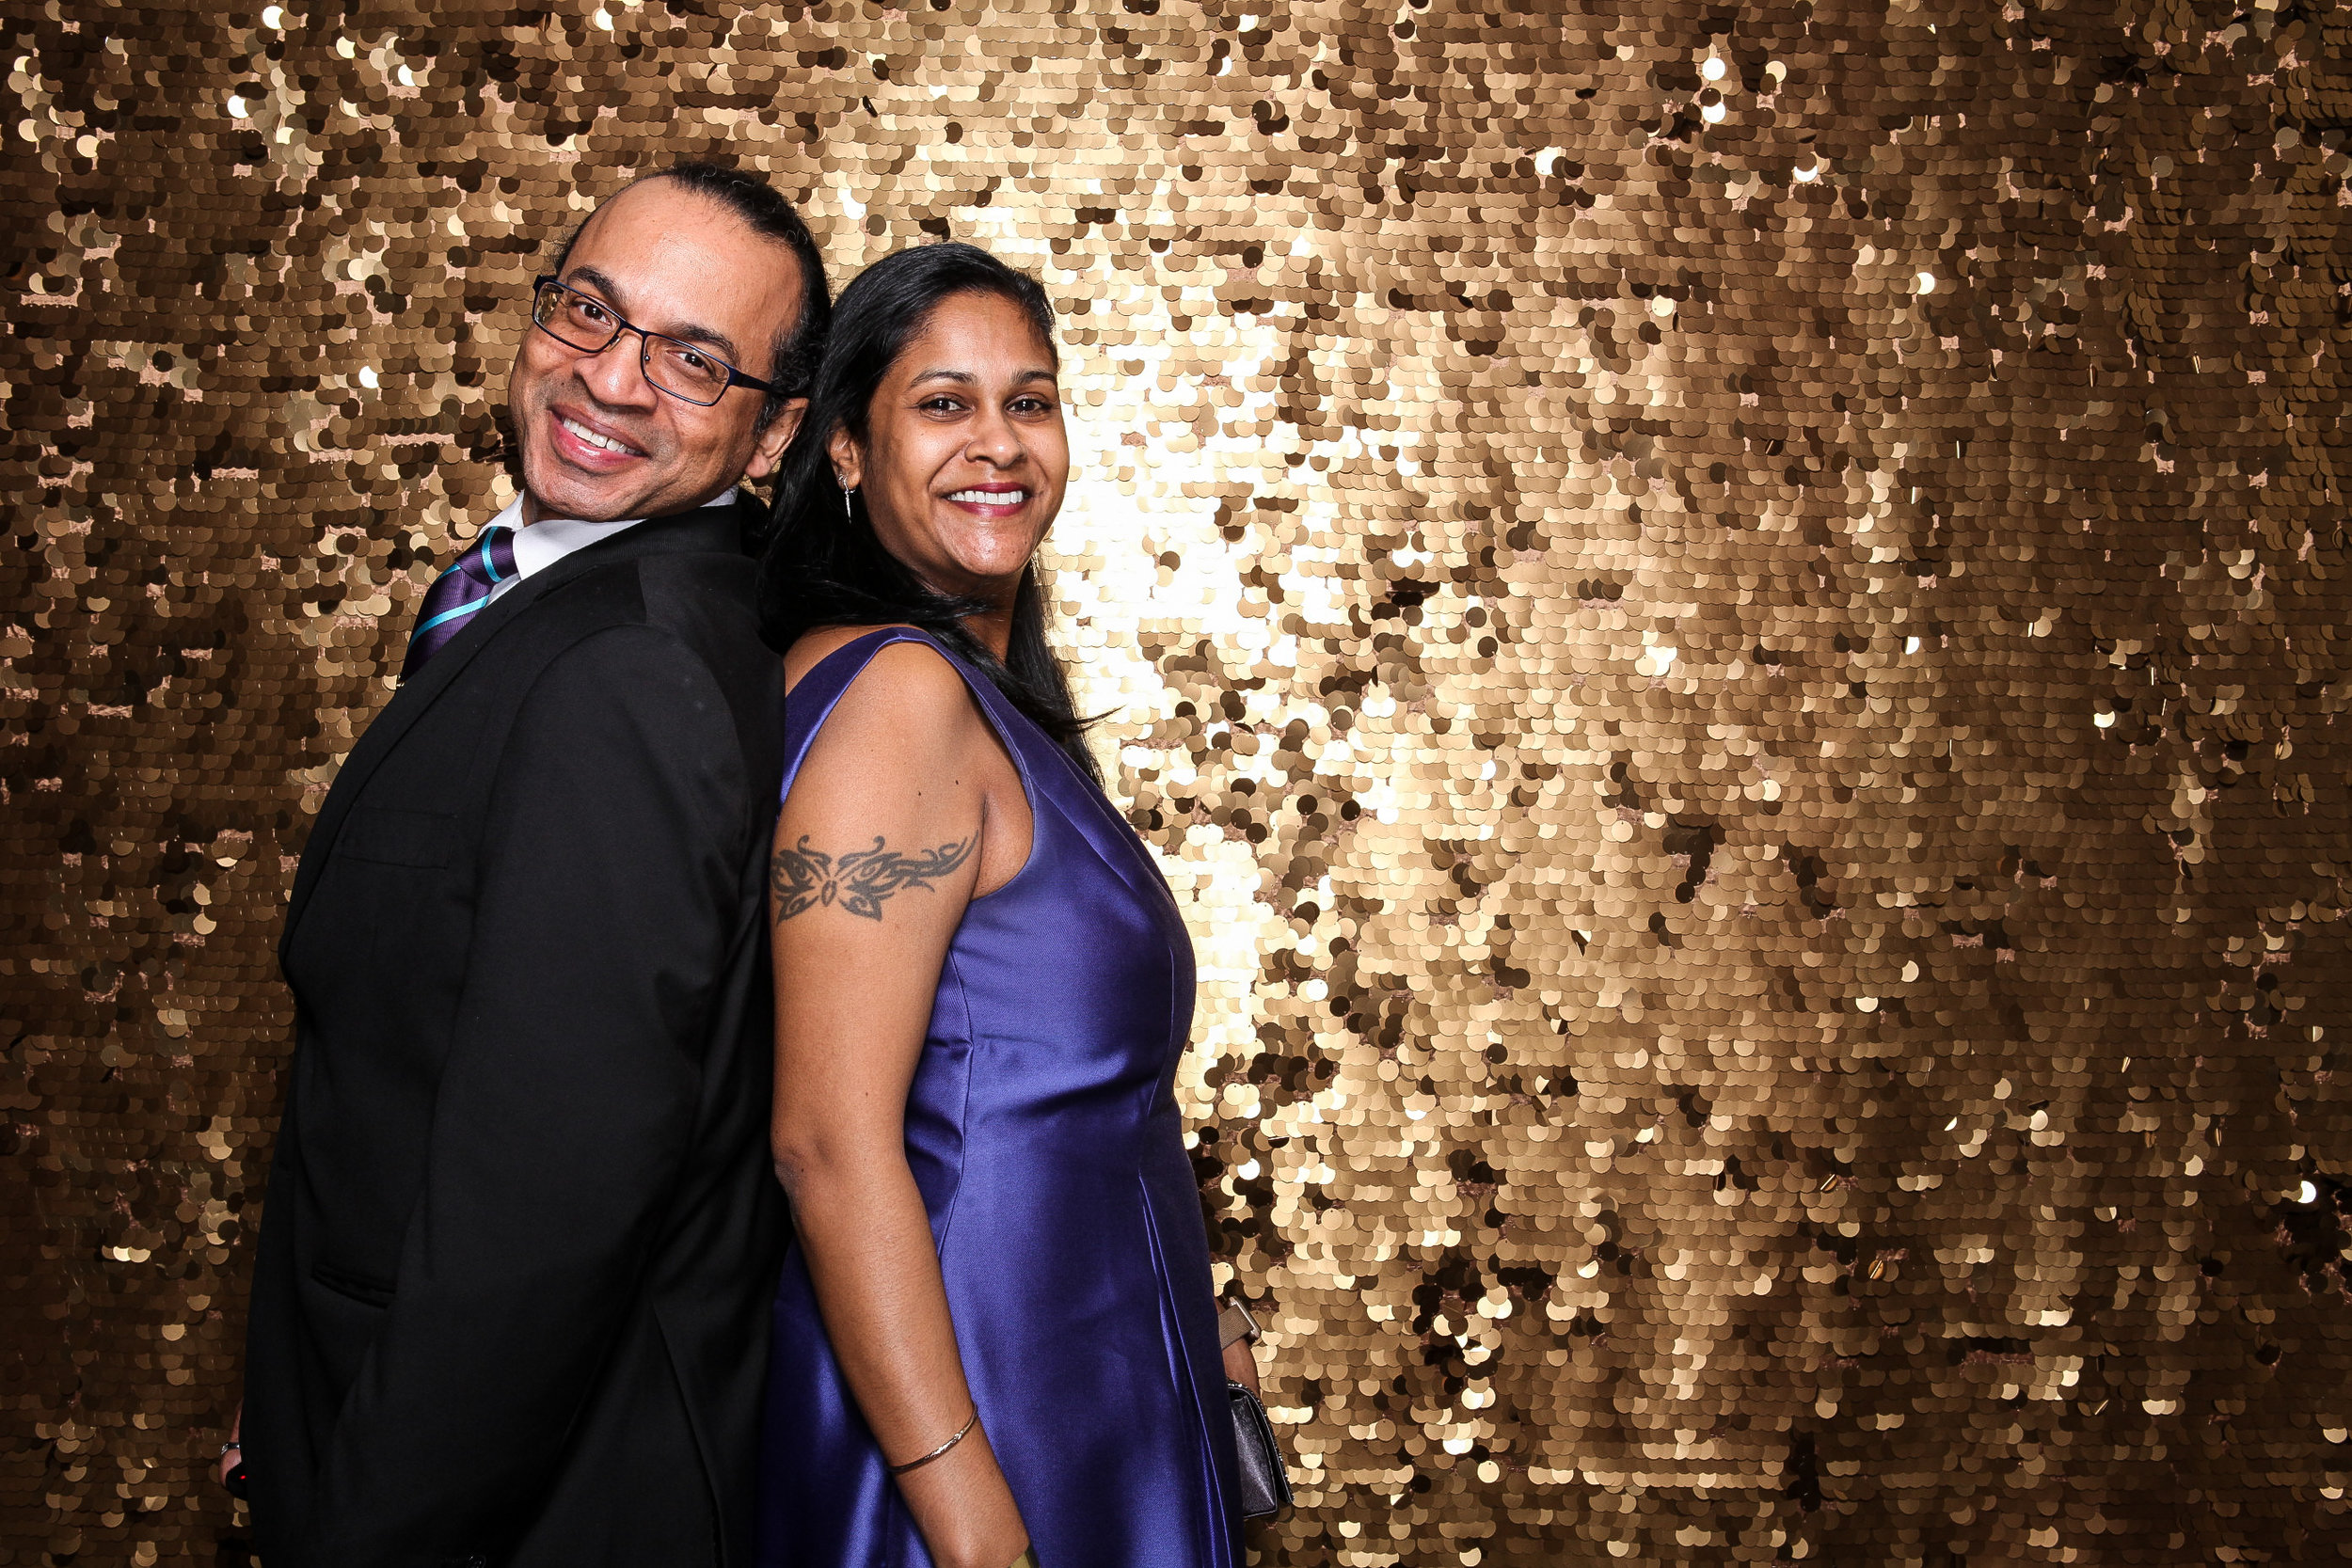 20190503_Adelphi_Senior_Formal-195.jpg